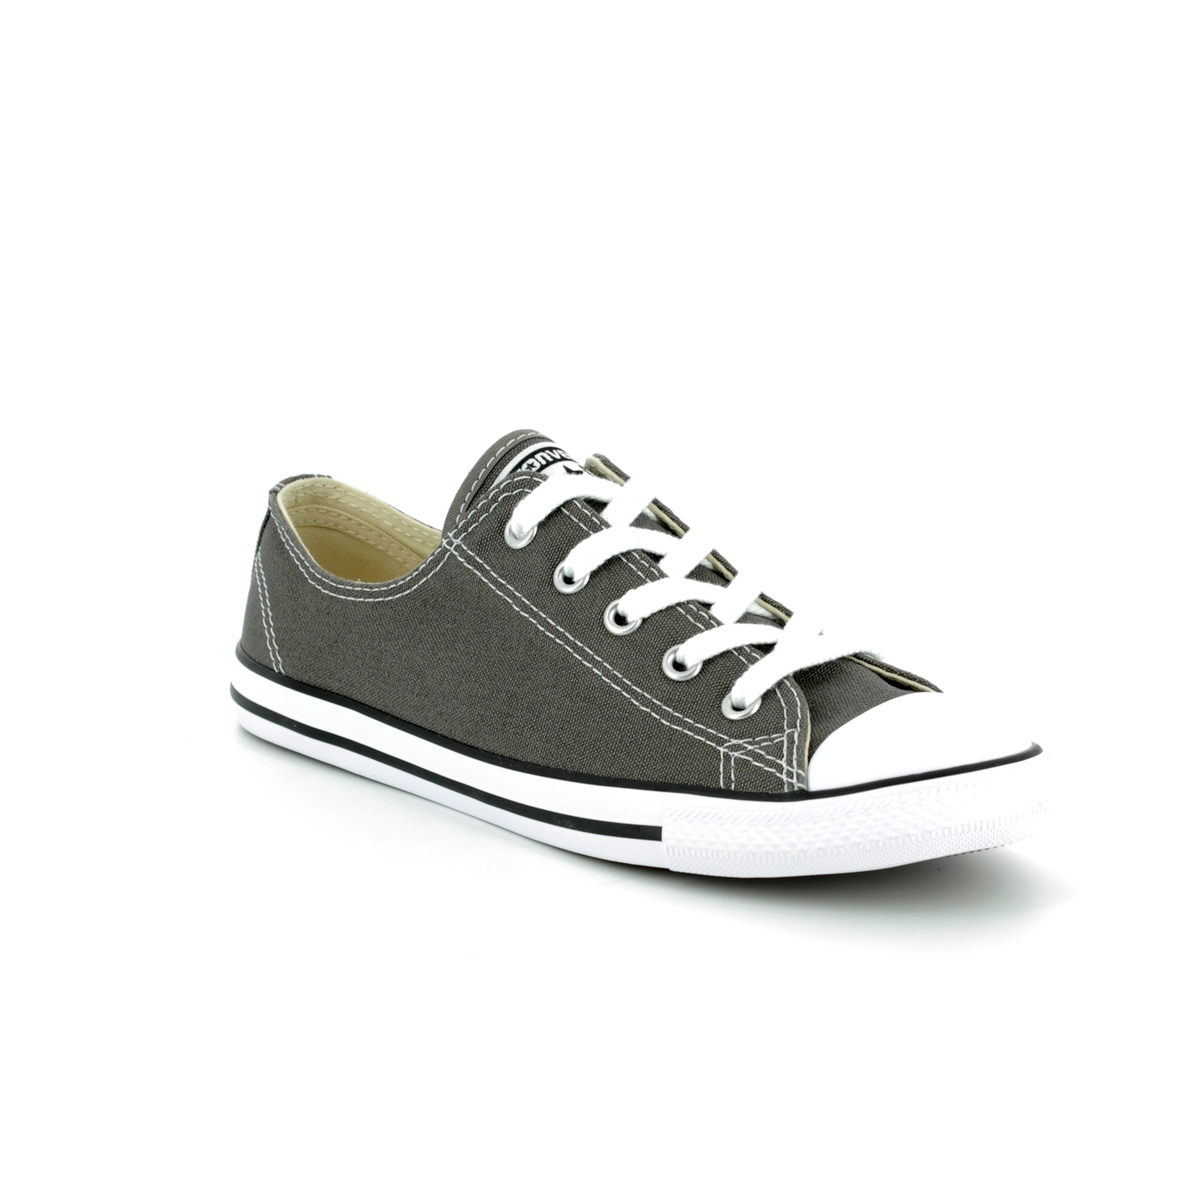 18263f87a9d Converse Trainers - Charcoal - 532353C All Star DAINTY OX